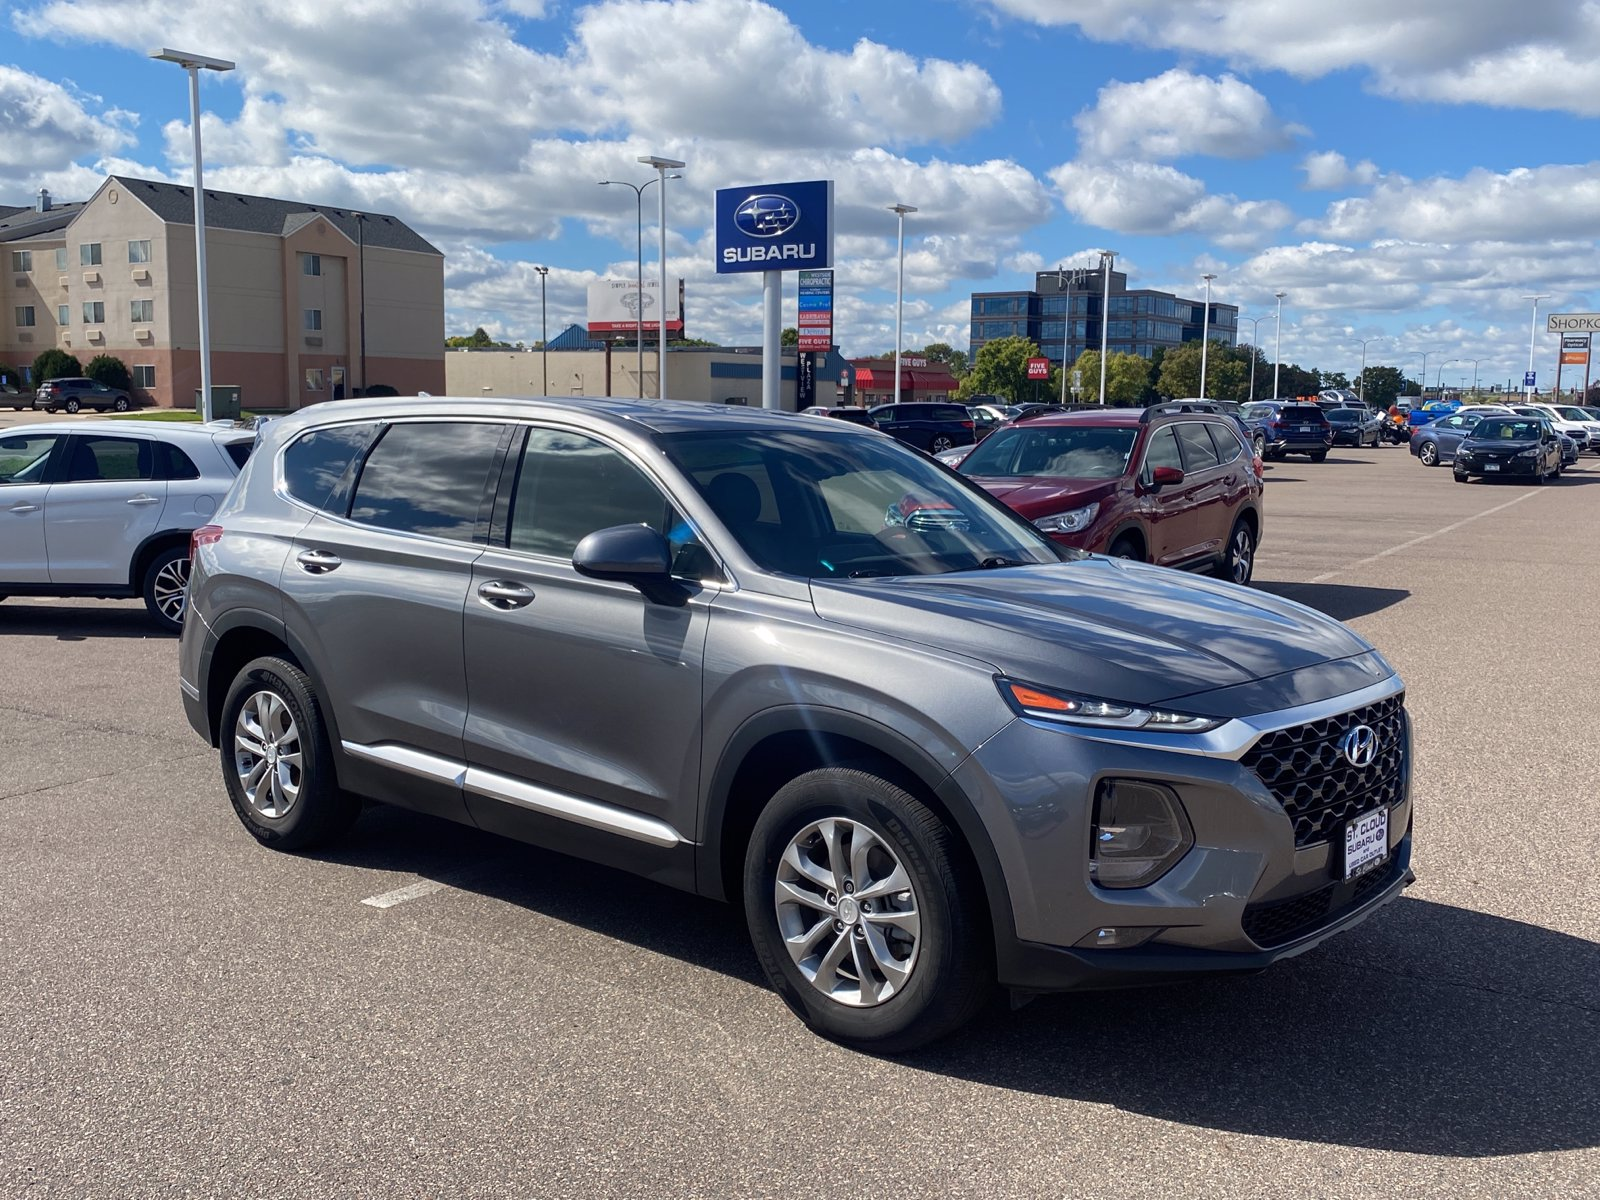 Used 2019 Hyundai Santa Fe SEL with VIN 5NMS3CAD5KH134394 for sale in Saint Cloud, Minnesota